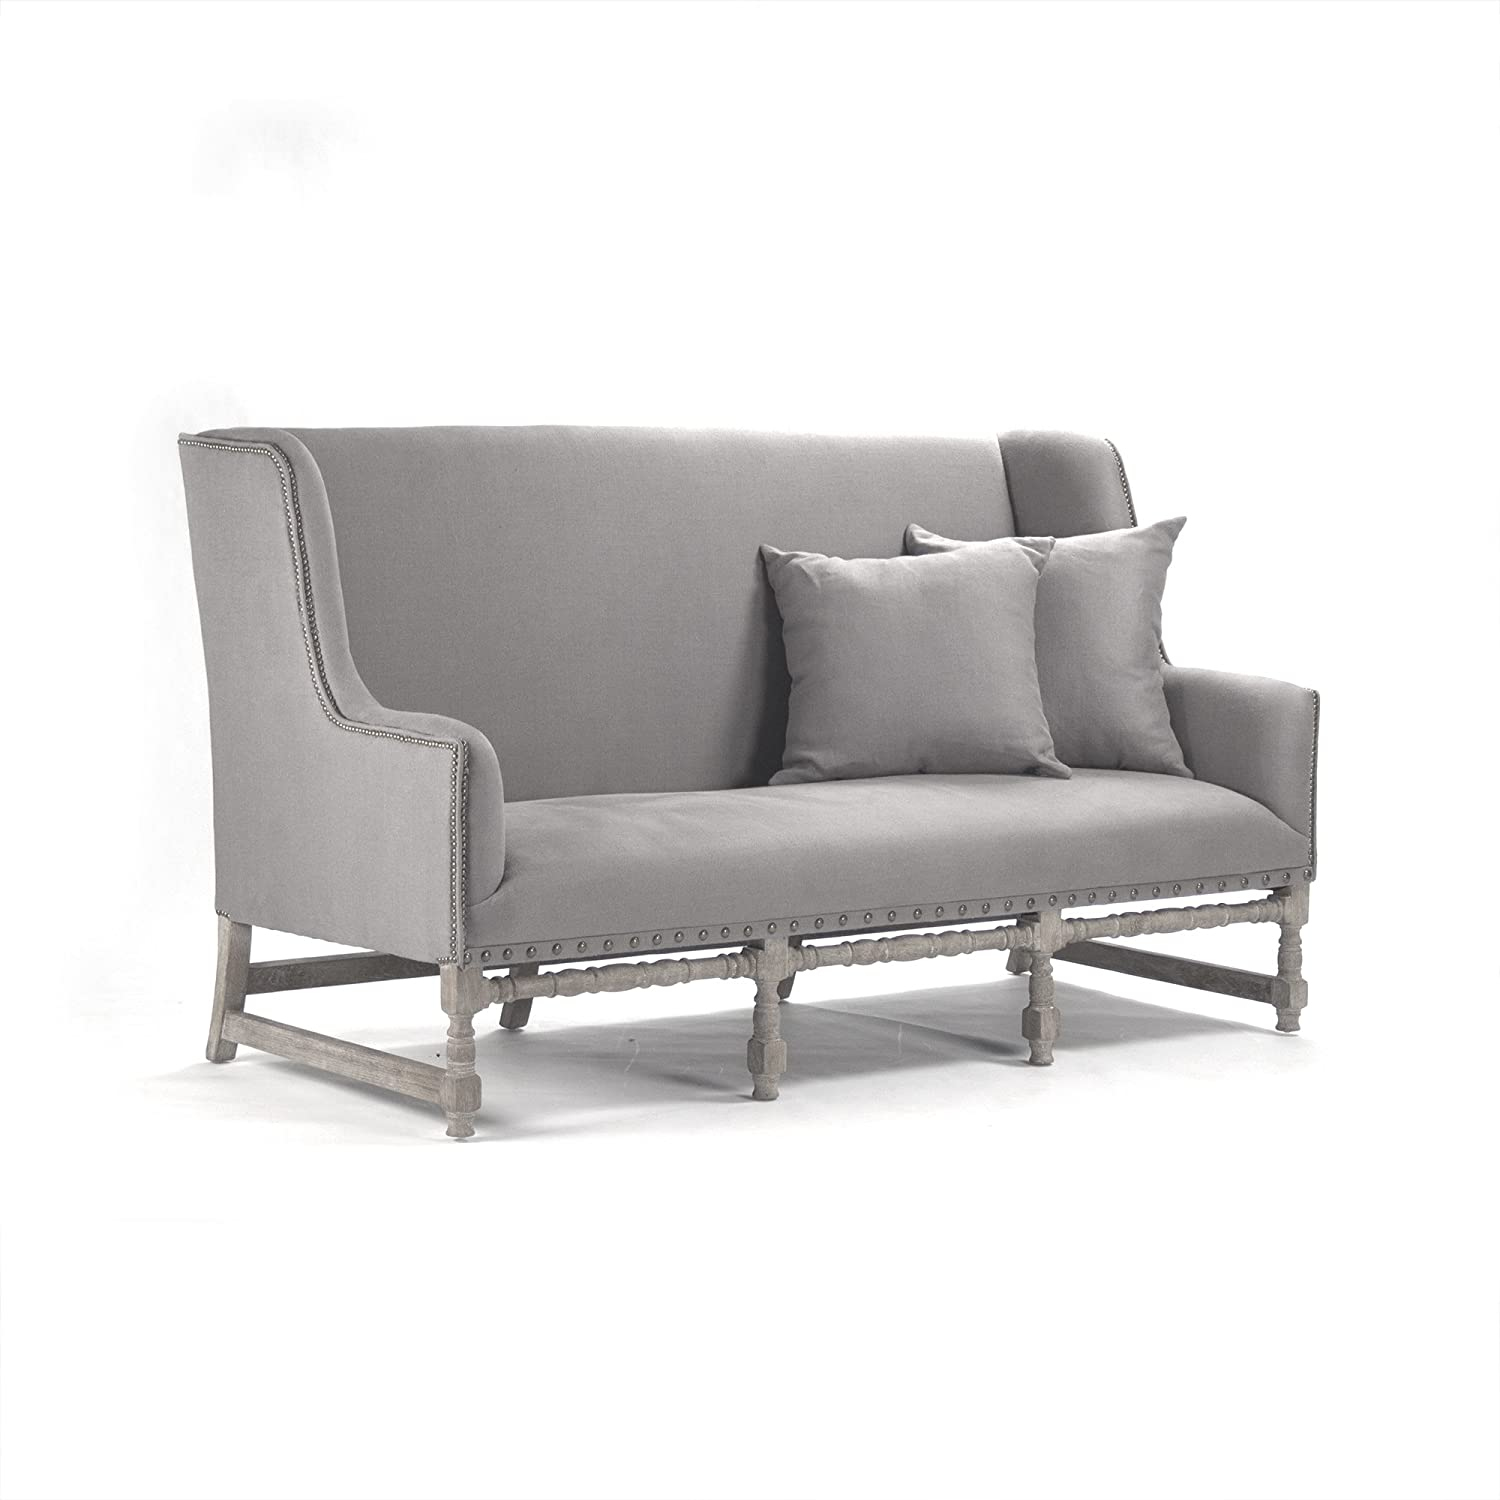 Zentique Aubert Bench, Grey Linen